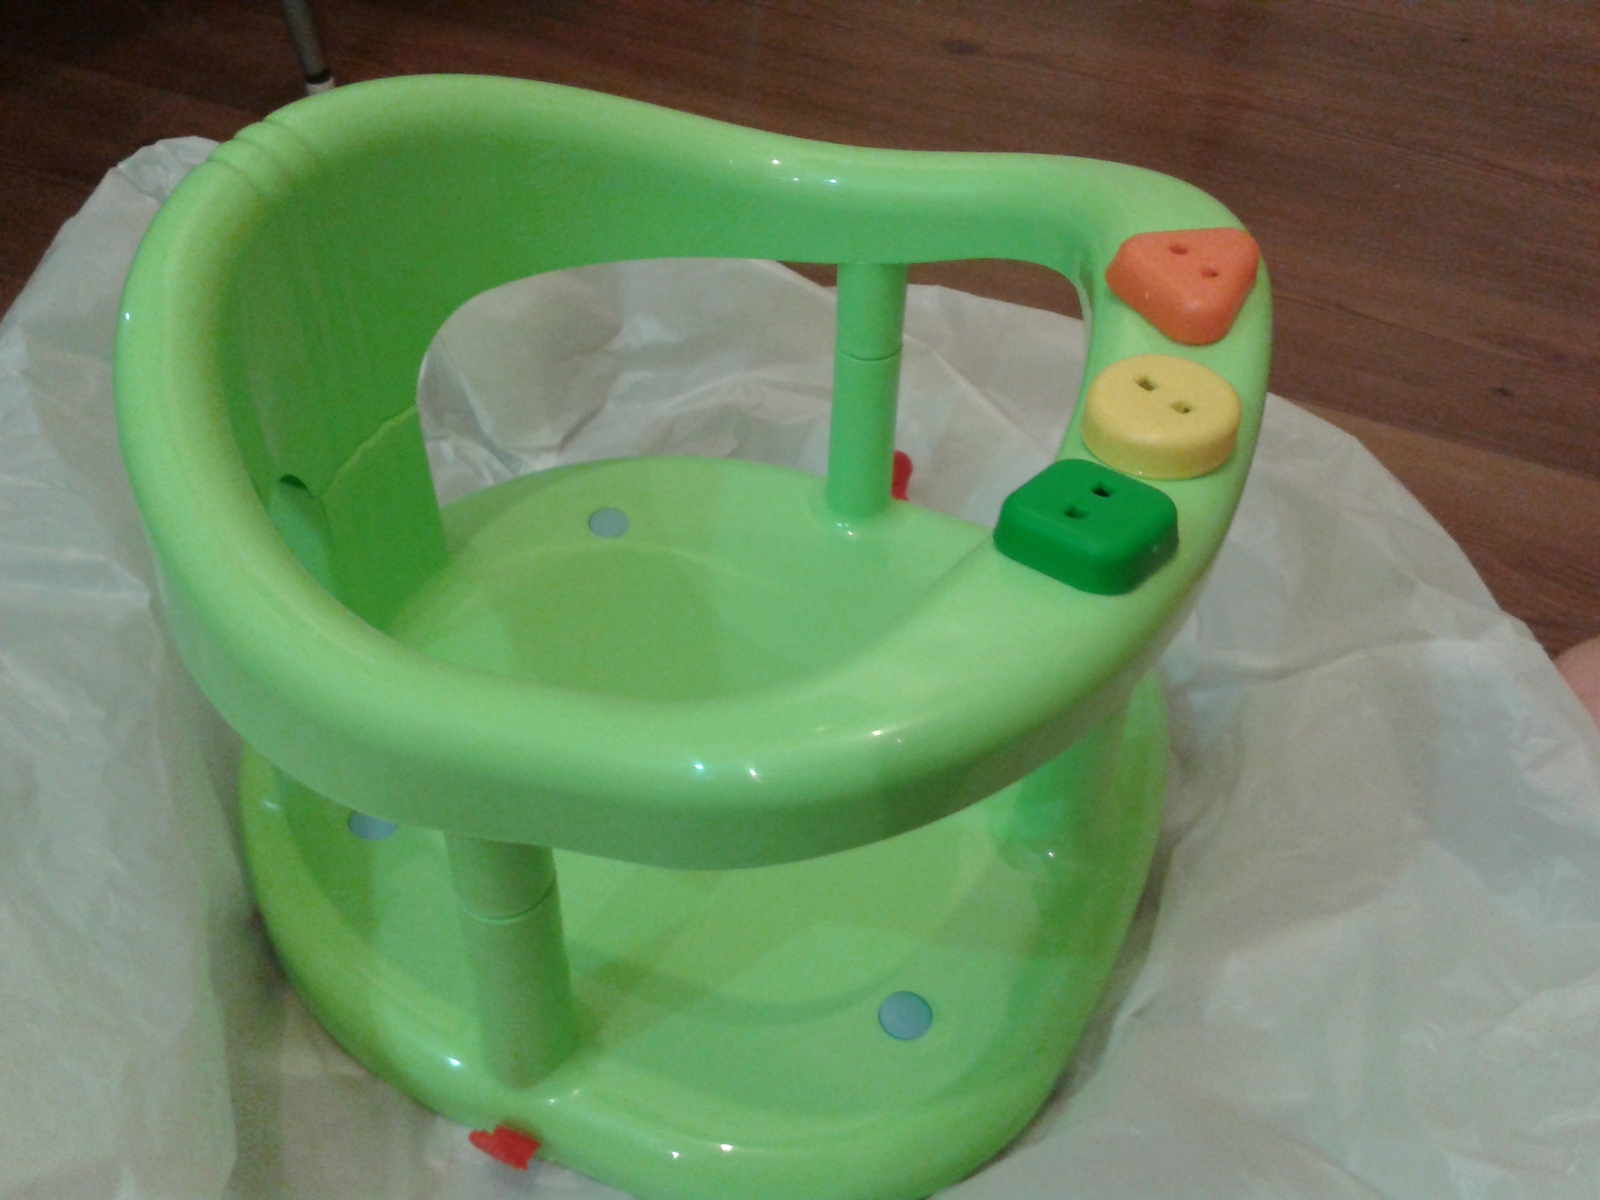 Baby Bath Tub Ring Seat Keter New And 48 Similar Items